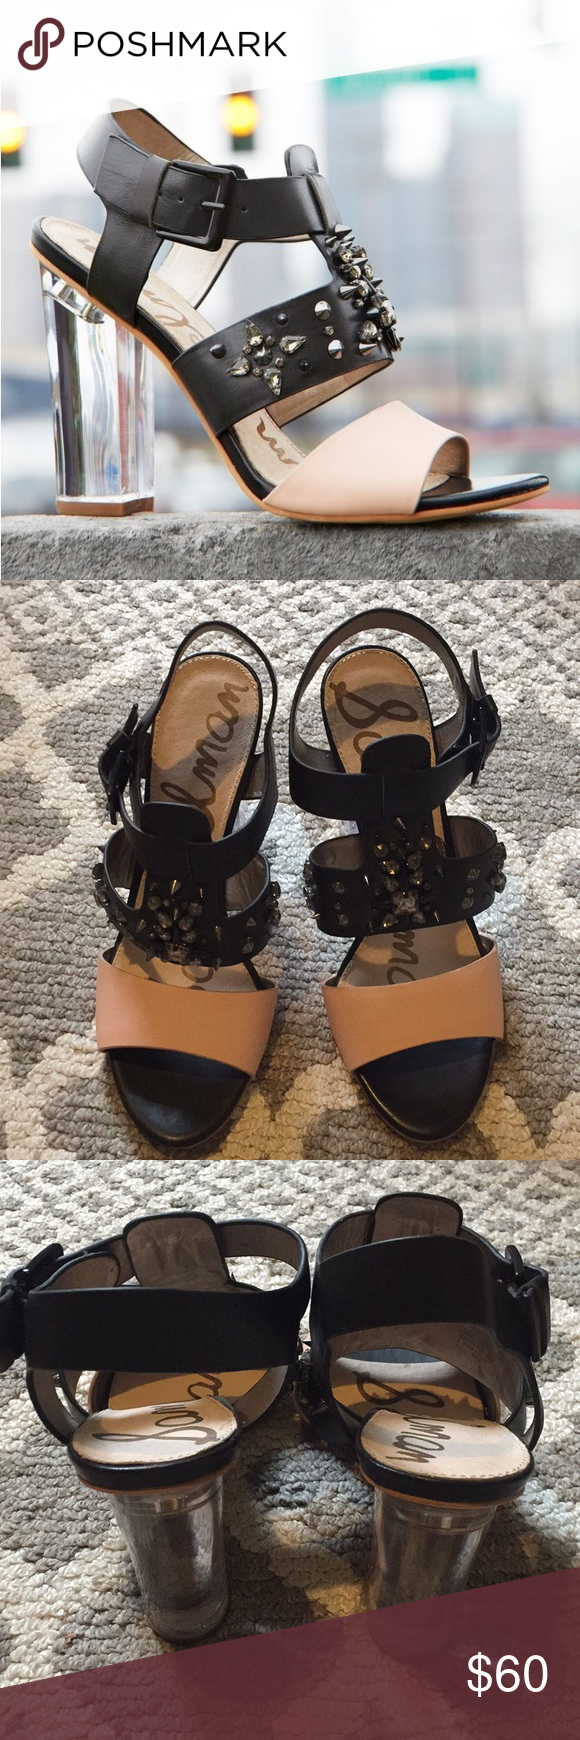 2d86297d7fca7c Sam Edelman Yara Sandal size 9 Really cool and funky Sam Edelman Yara  studded block heel